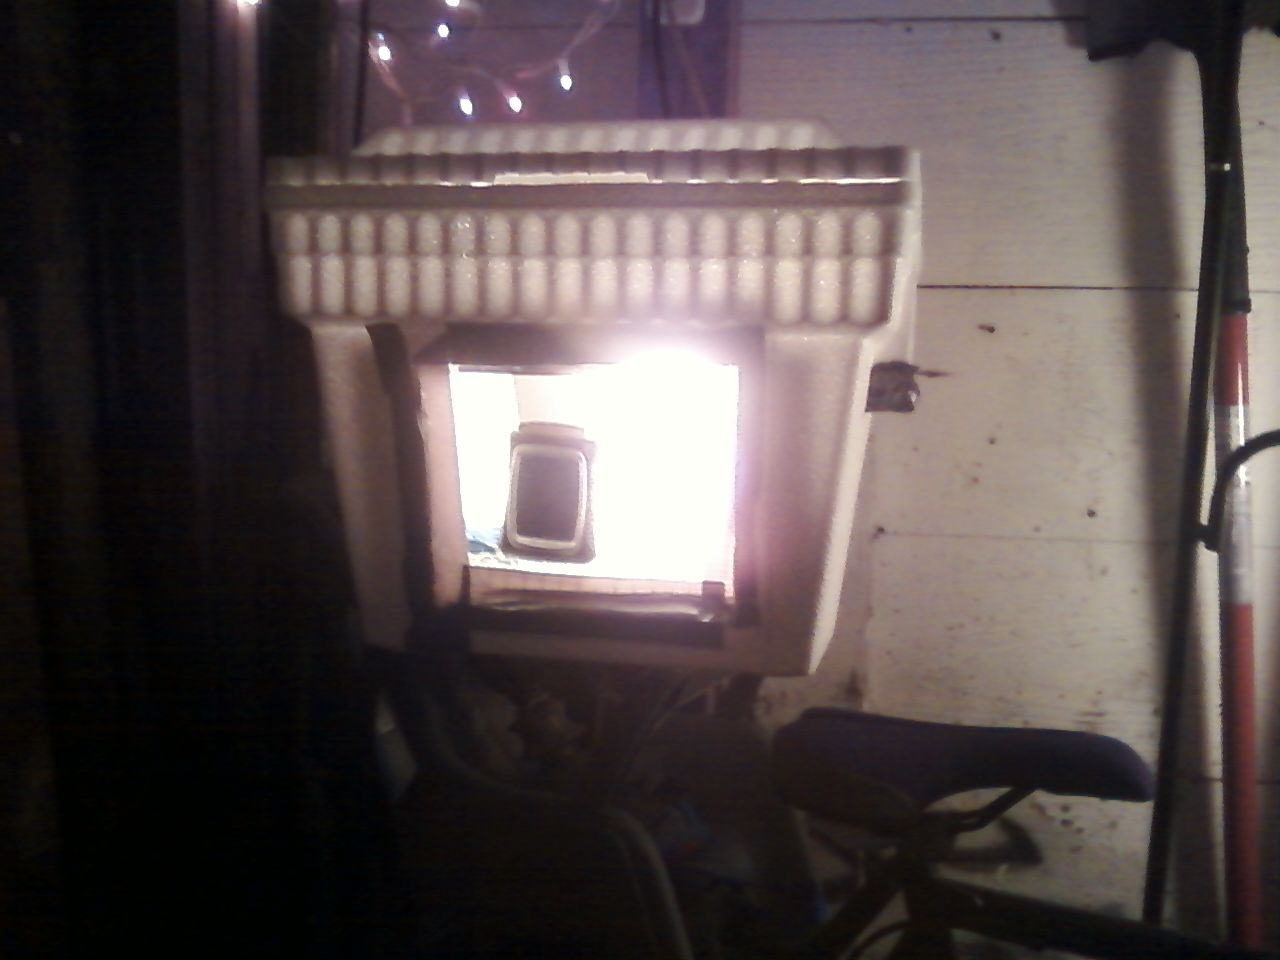 Diy Quail Chicken Incubator Temperature Regulated By Thermostat Rewiring Old Lamp Used Rewired Through Water Heater